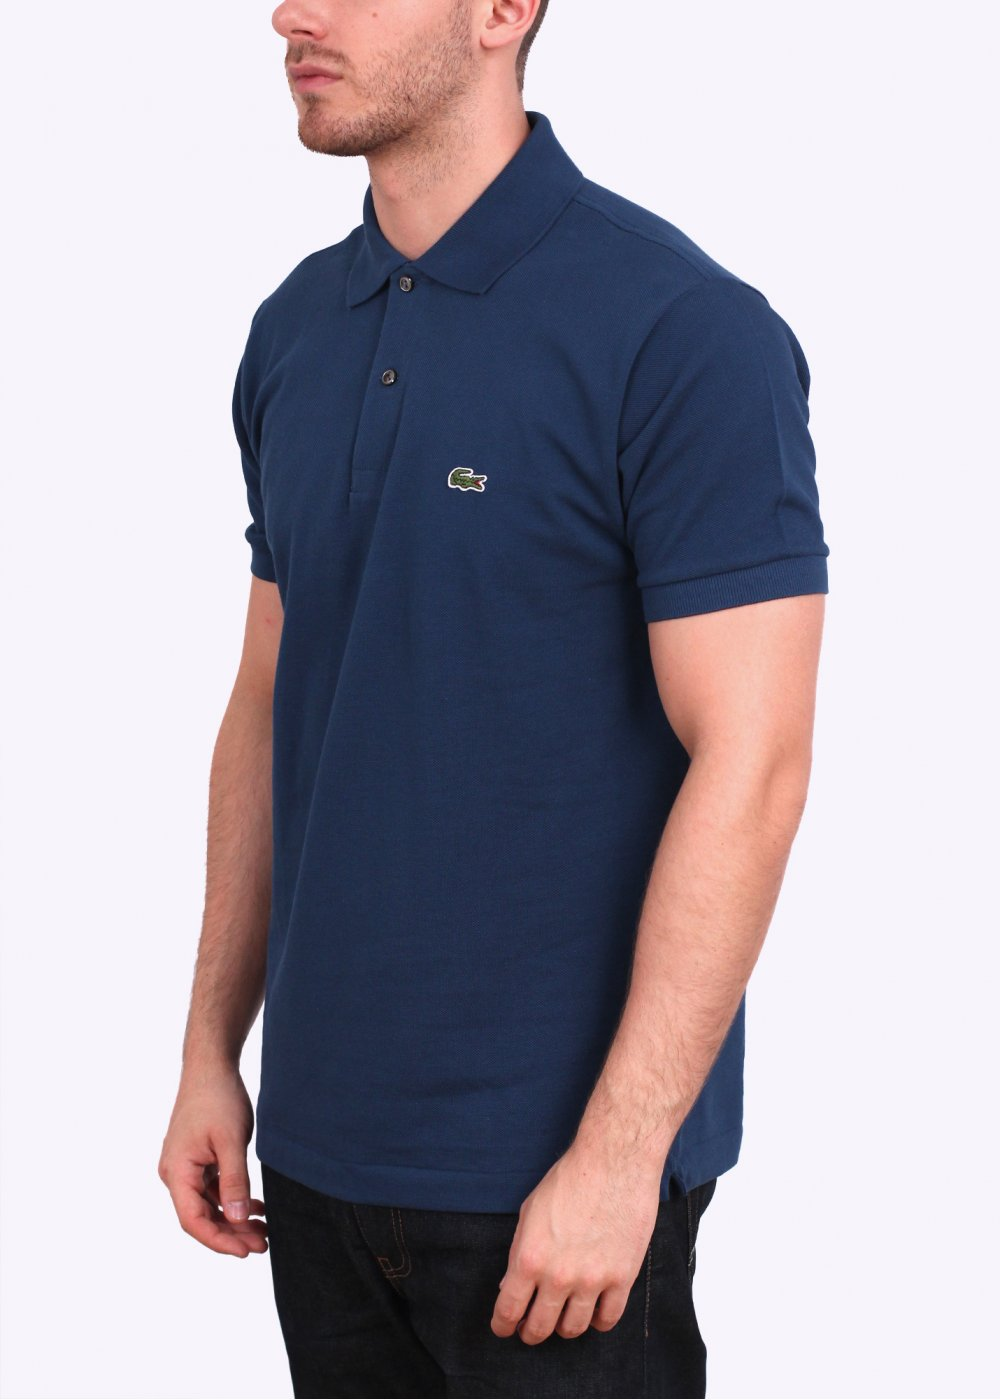 Lacoste short sleeve logo polo shirt philippines blue for Lacoste poloshirt weiay